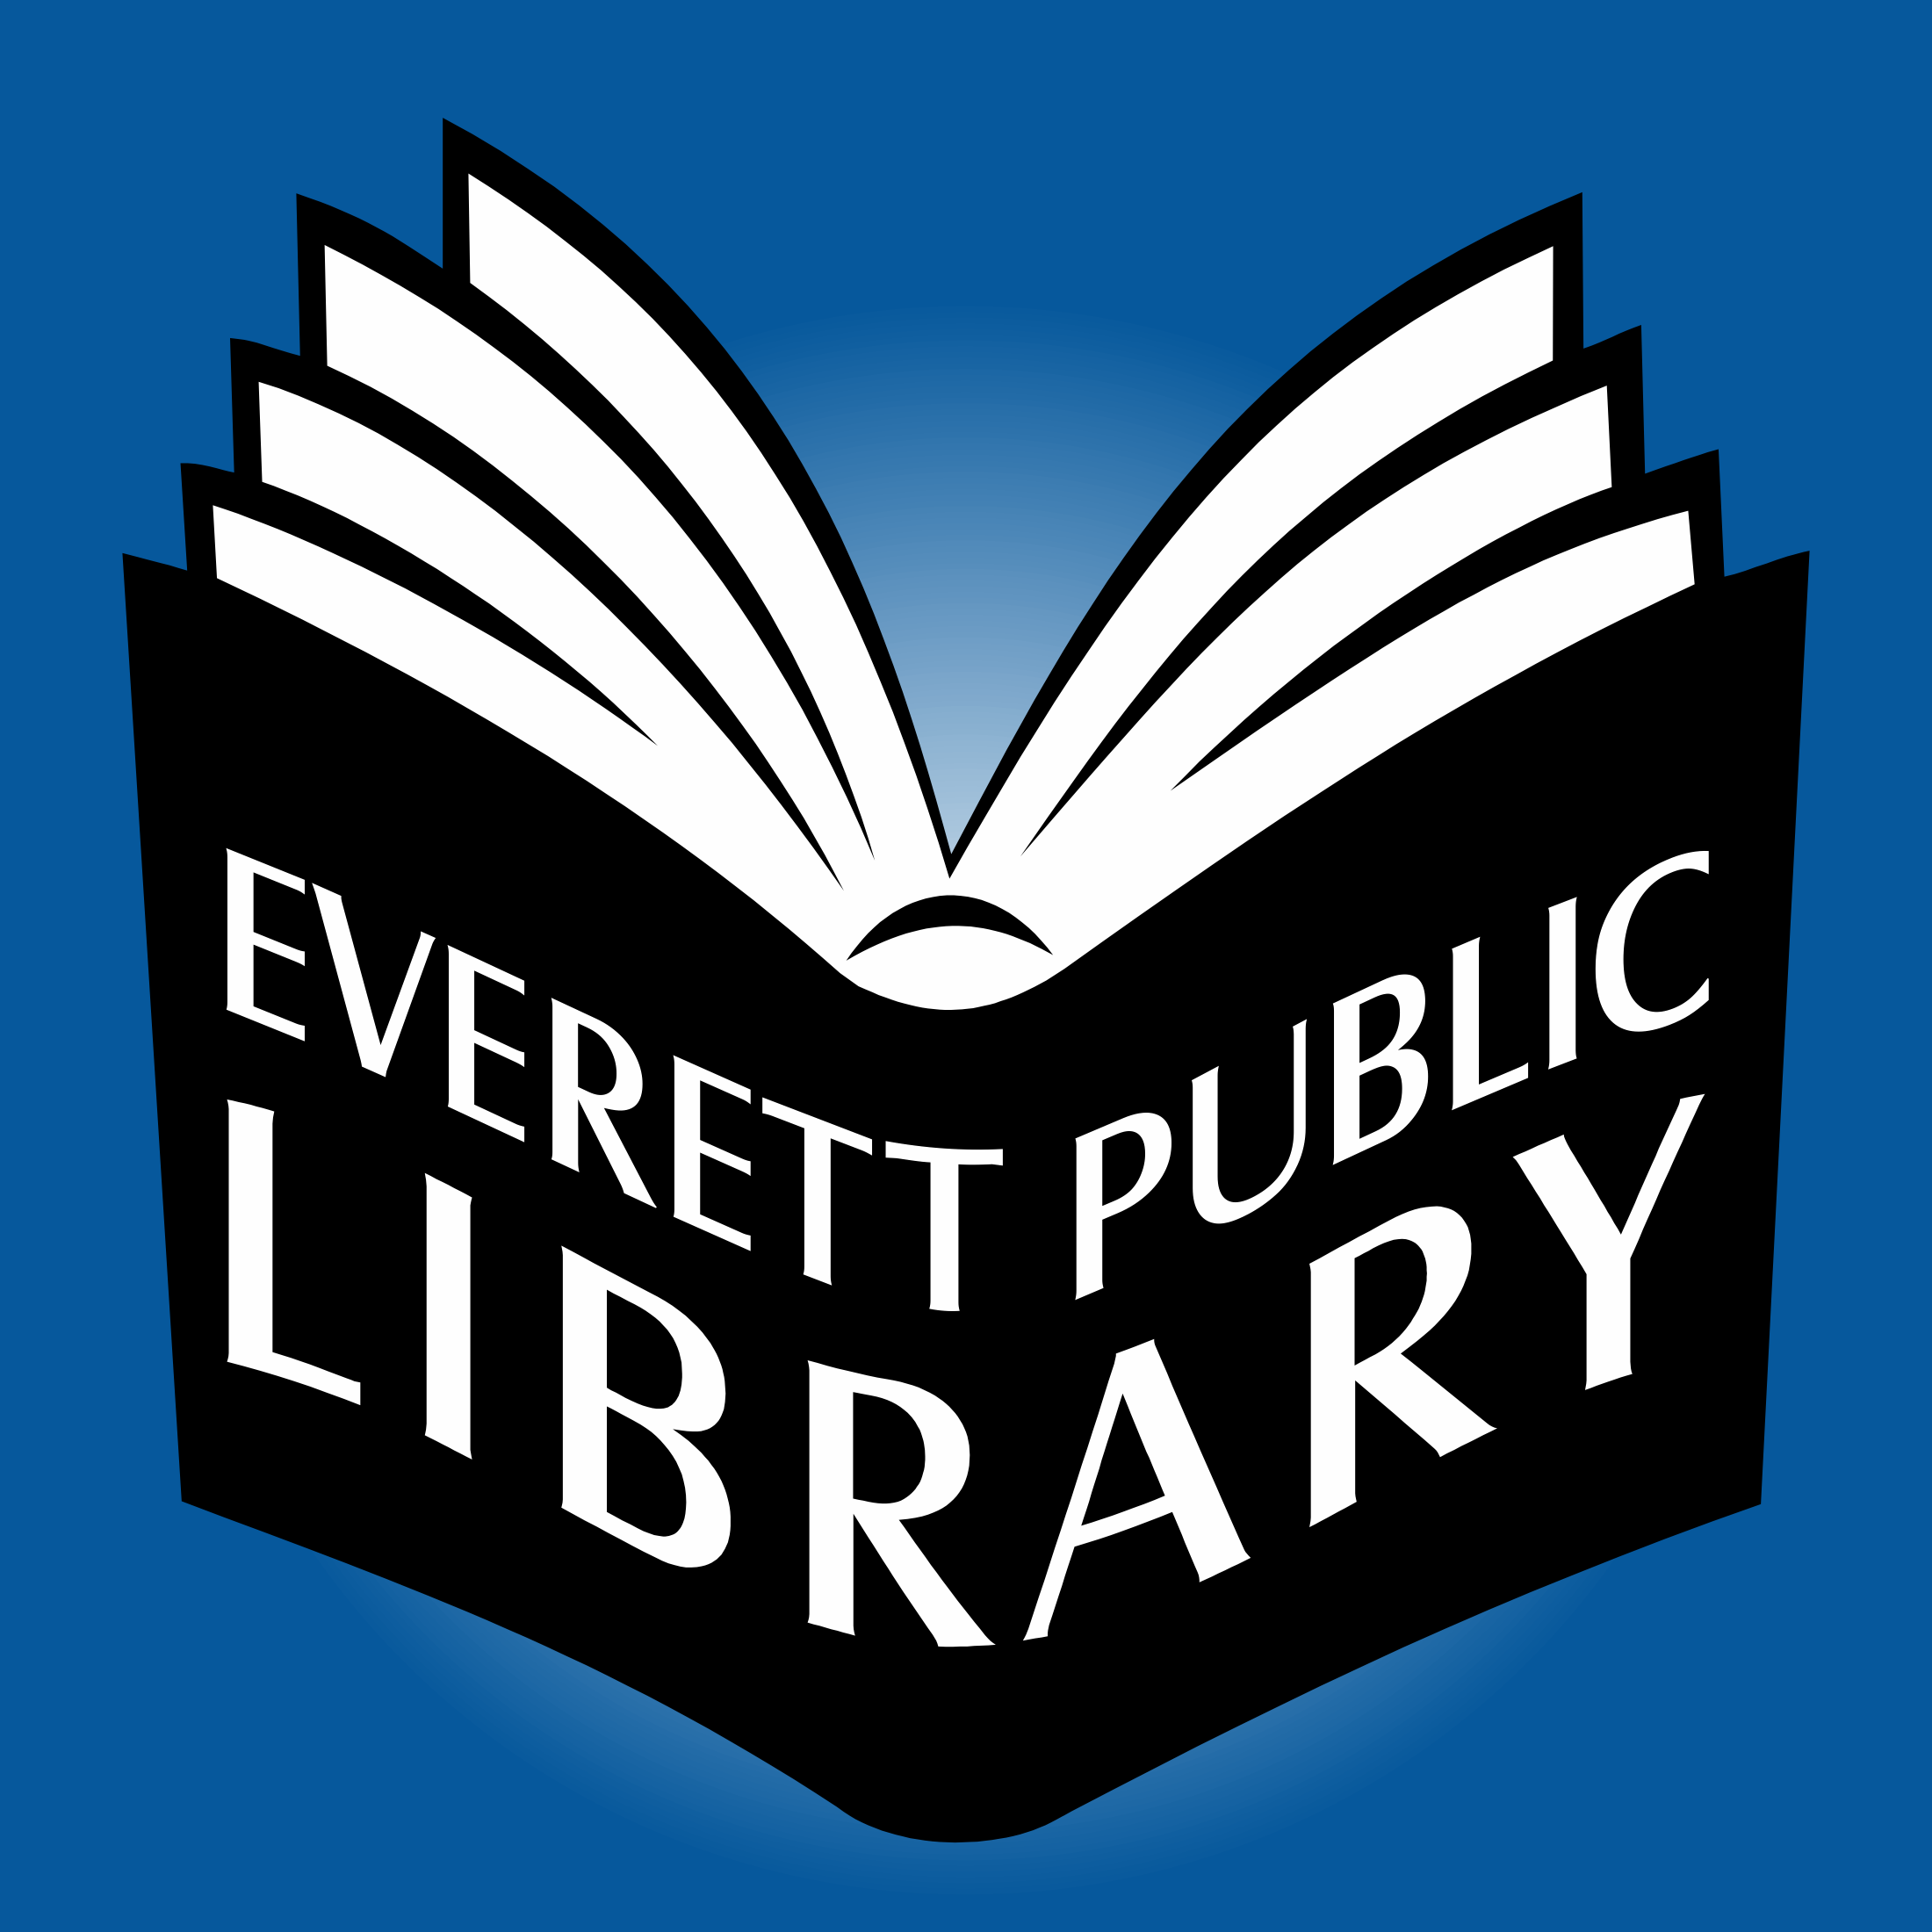 Everett Public Library Podcasts show art